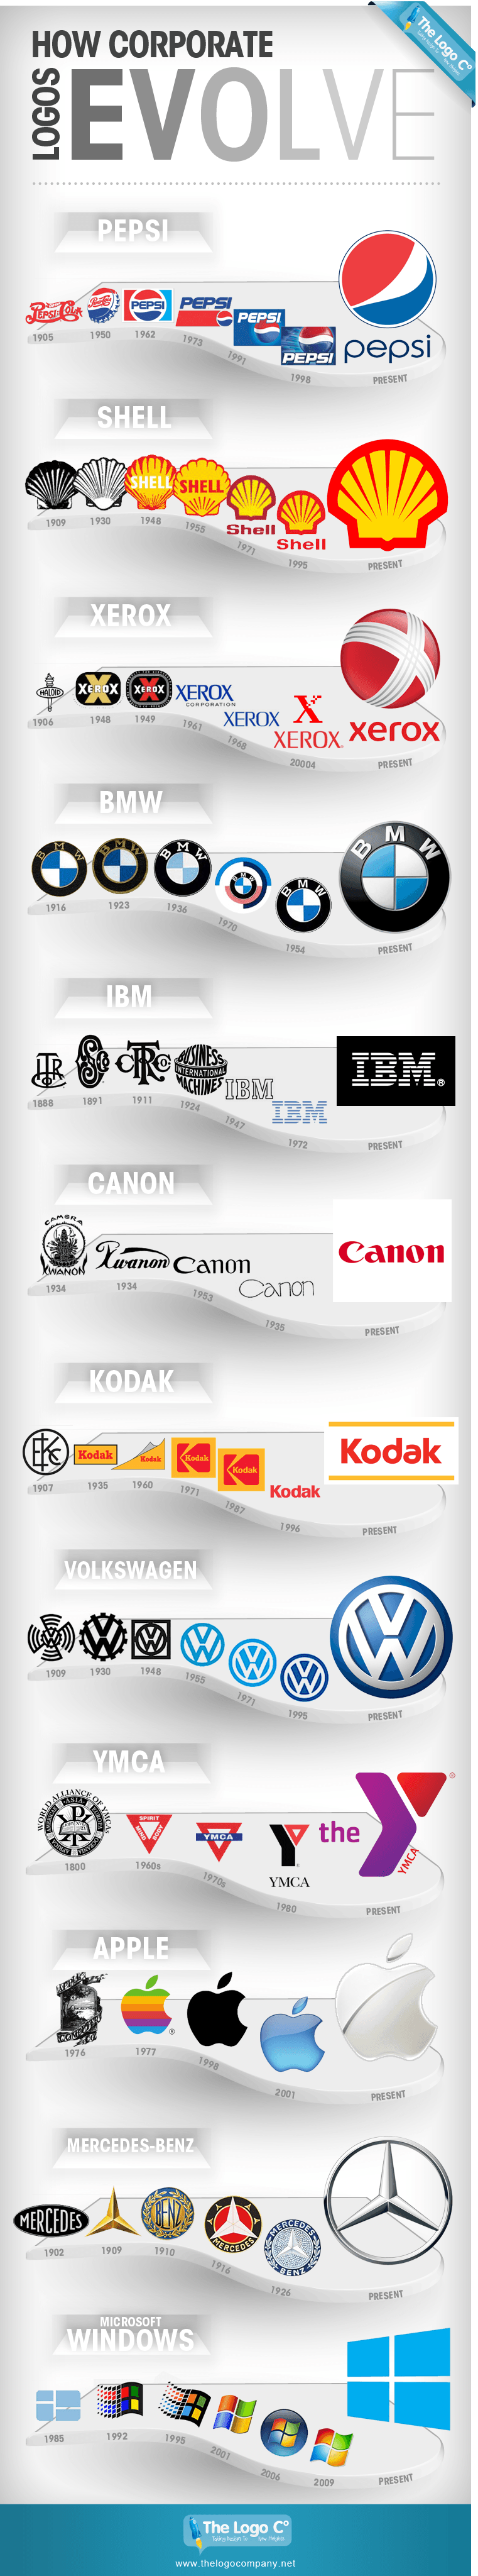 The Interesting Evolution Of Company Logos